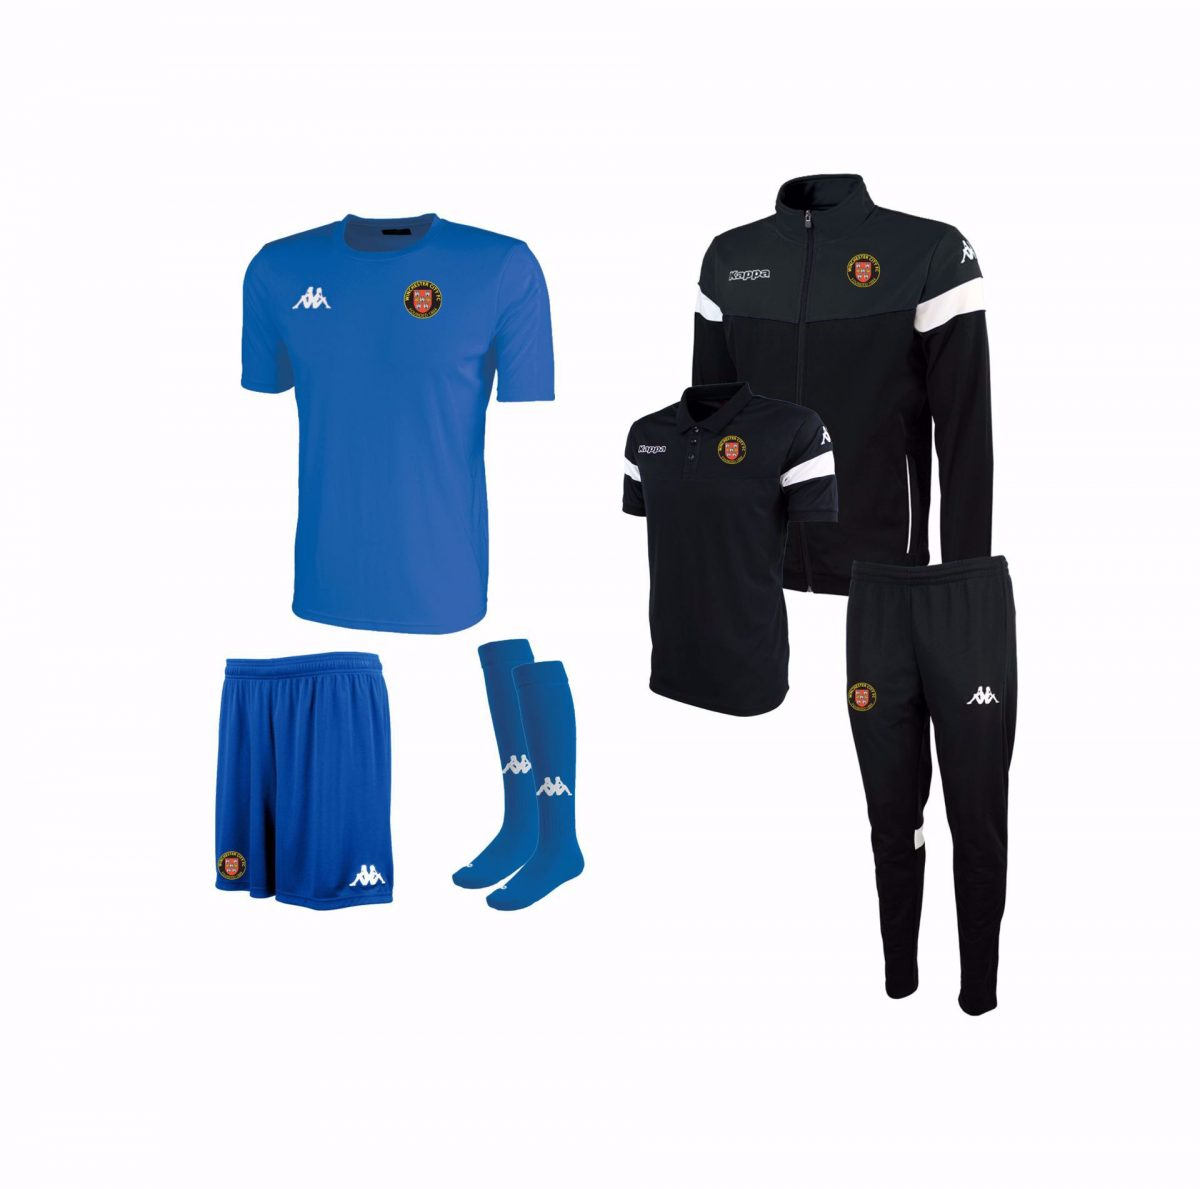 Winchester City FC Players Pack 2020/21- Under 16's/U18's